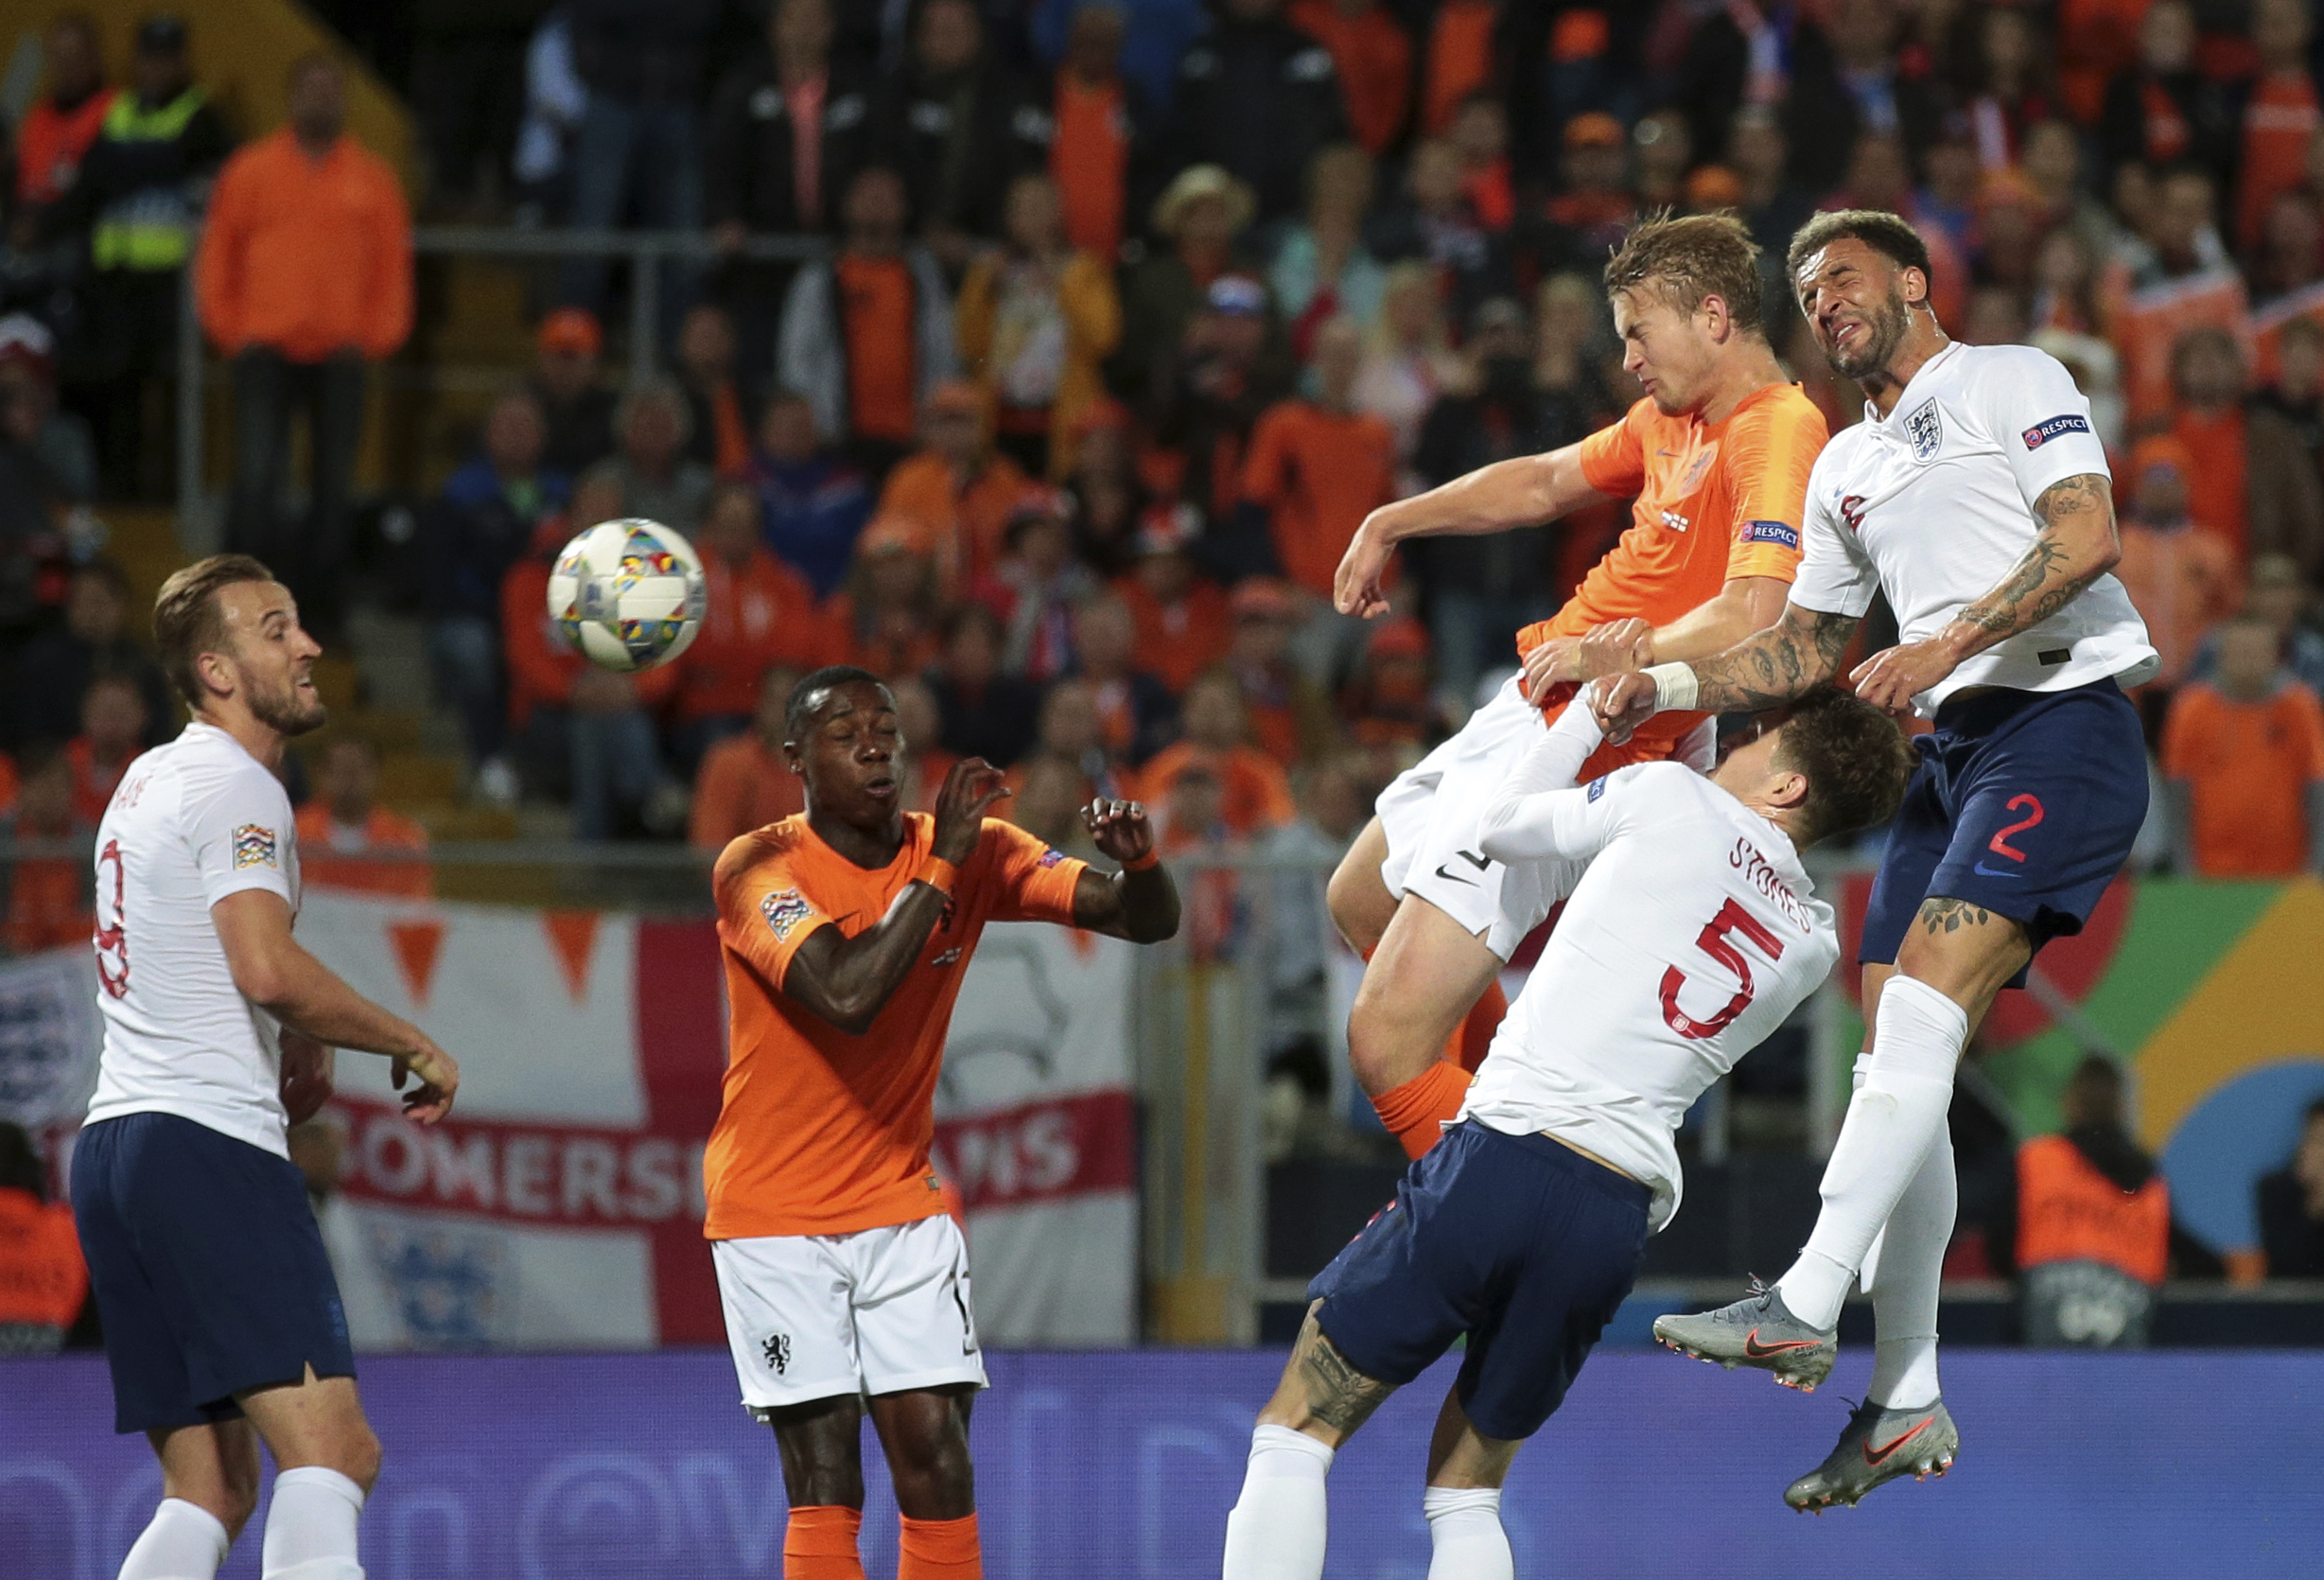 De Ligt scoring his goal against England last night (Image Credit:PA)